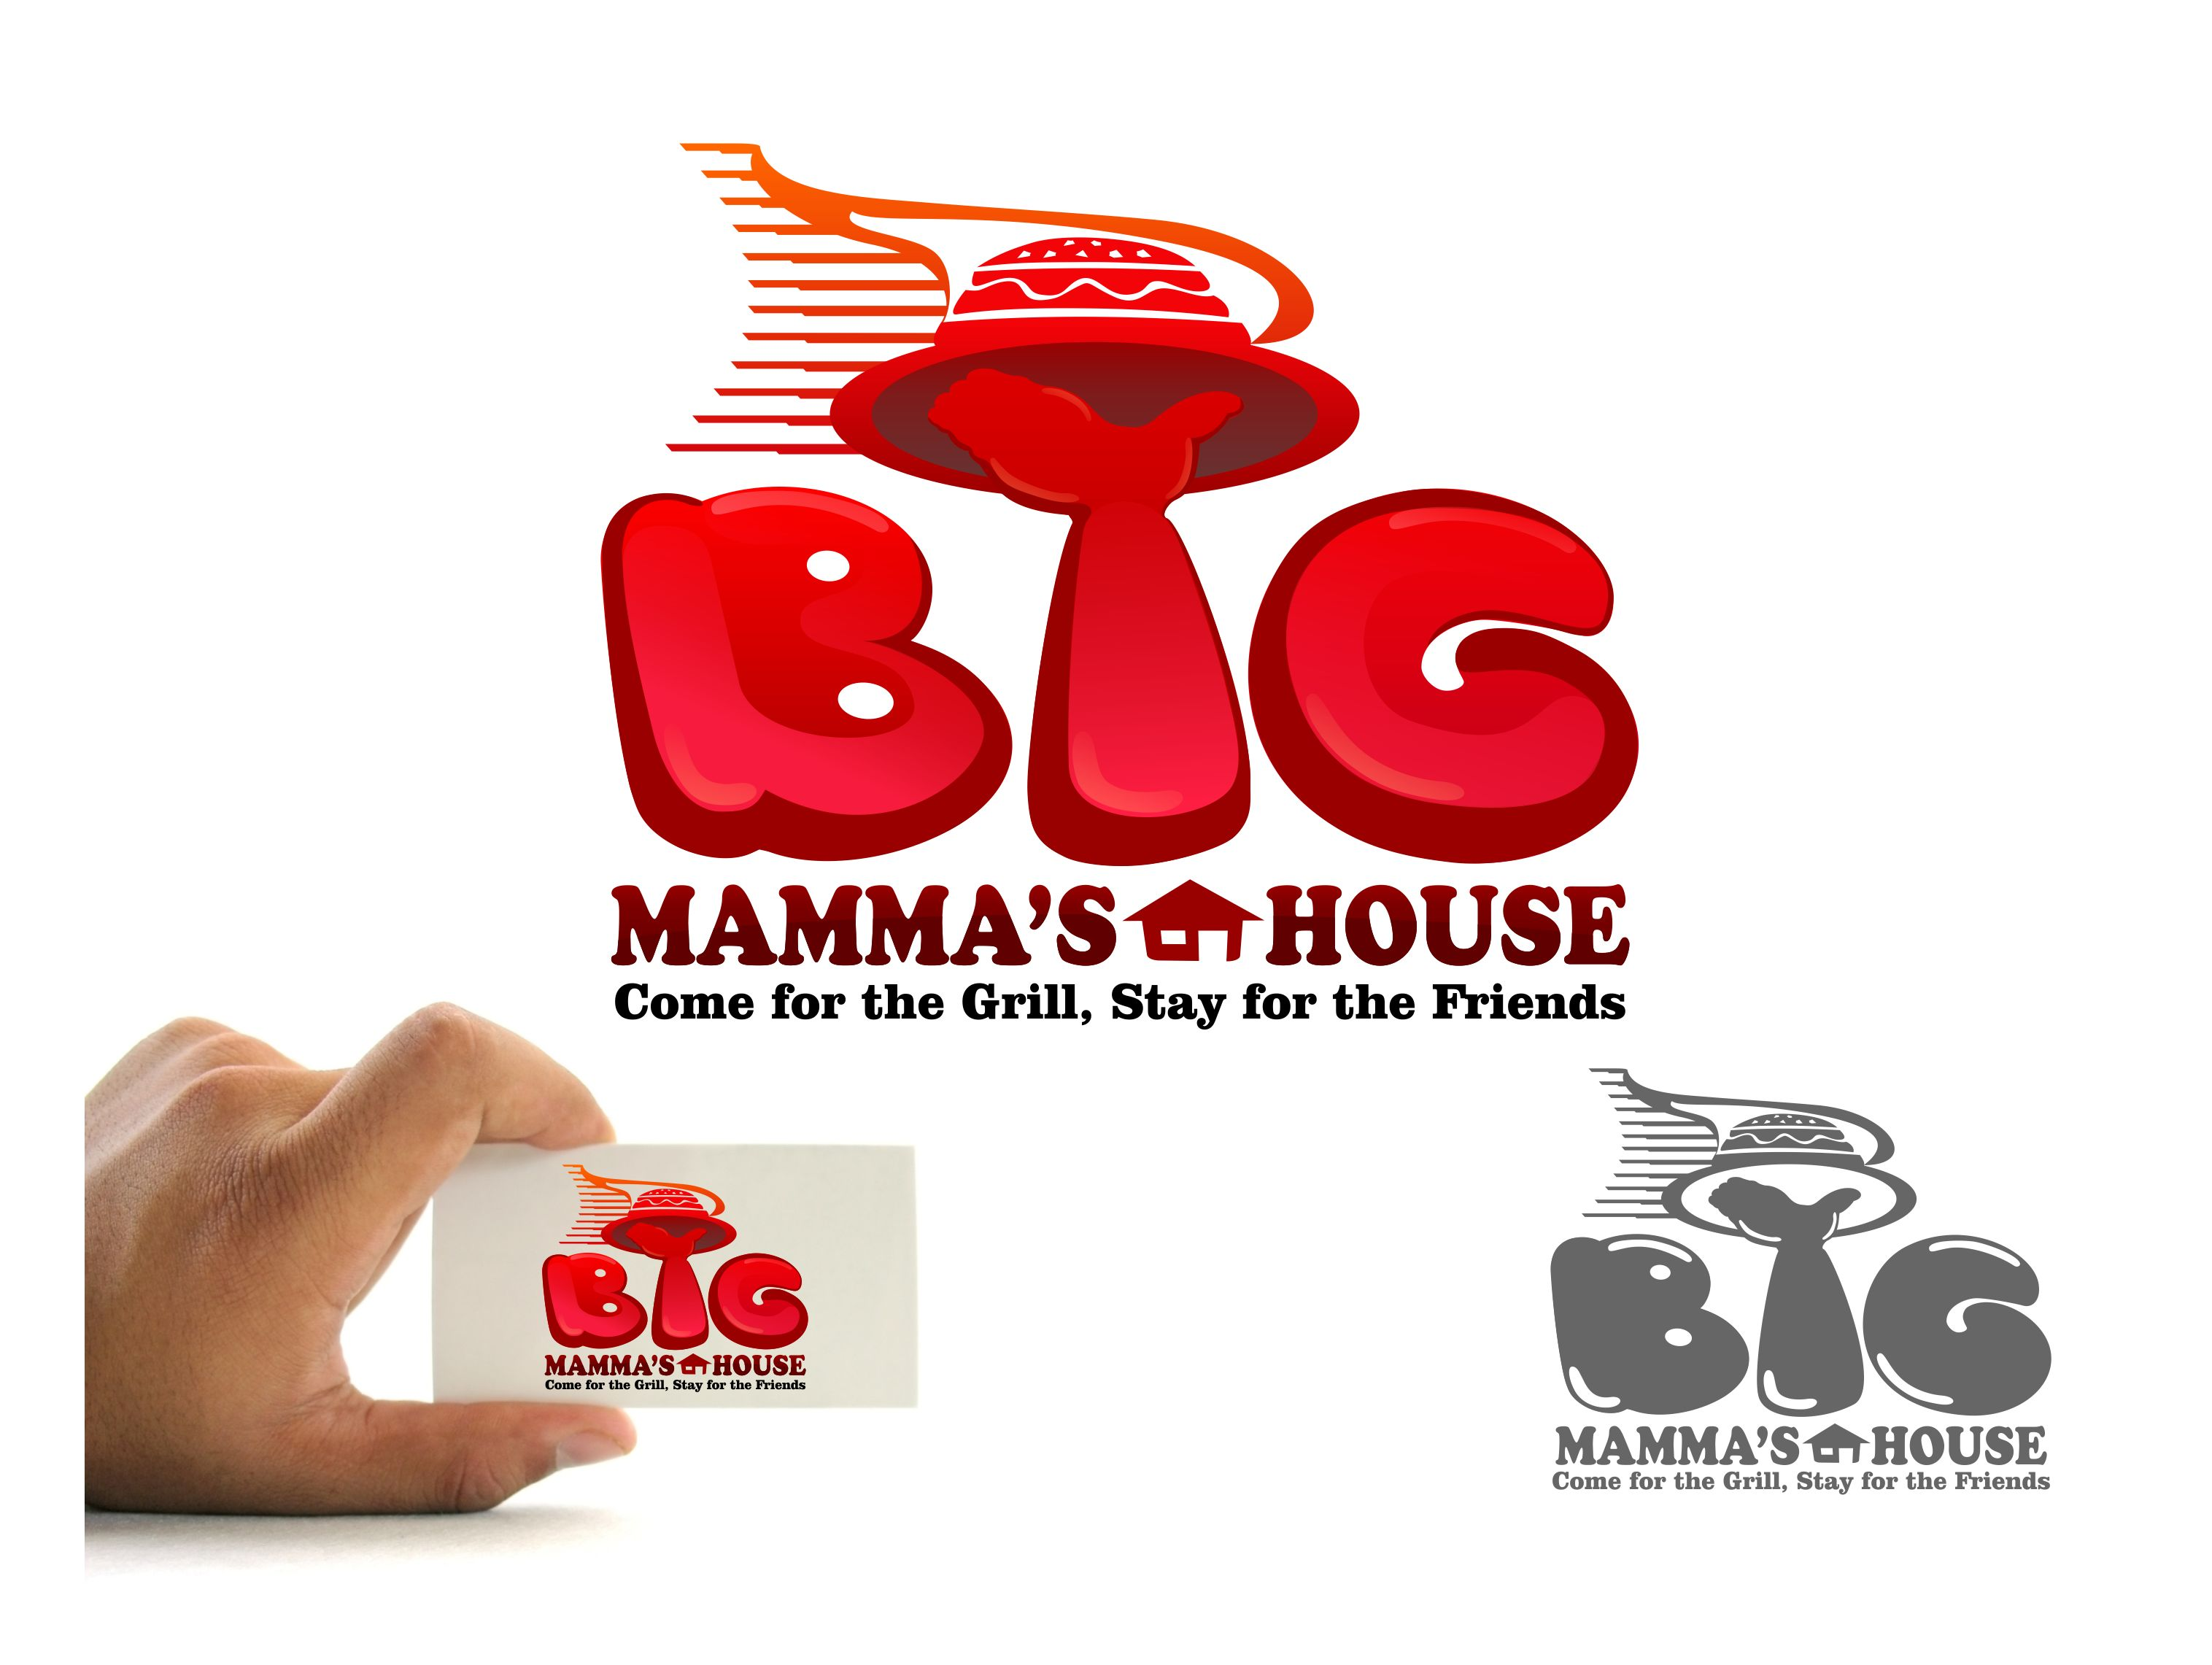 Logo Design by joca - Entry No. 57 in the Logo Design Contest Captivating Logo Design for Big Mamma's House.